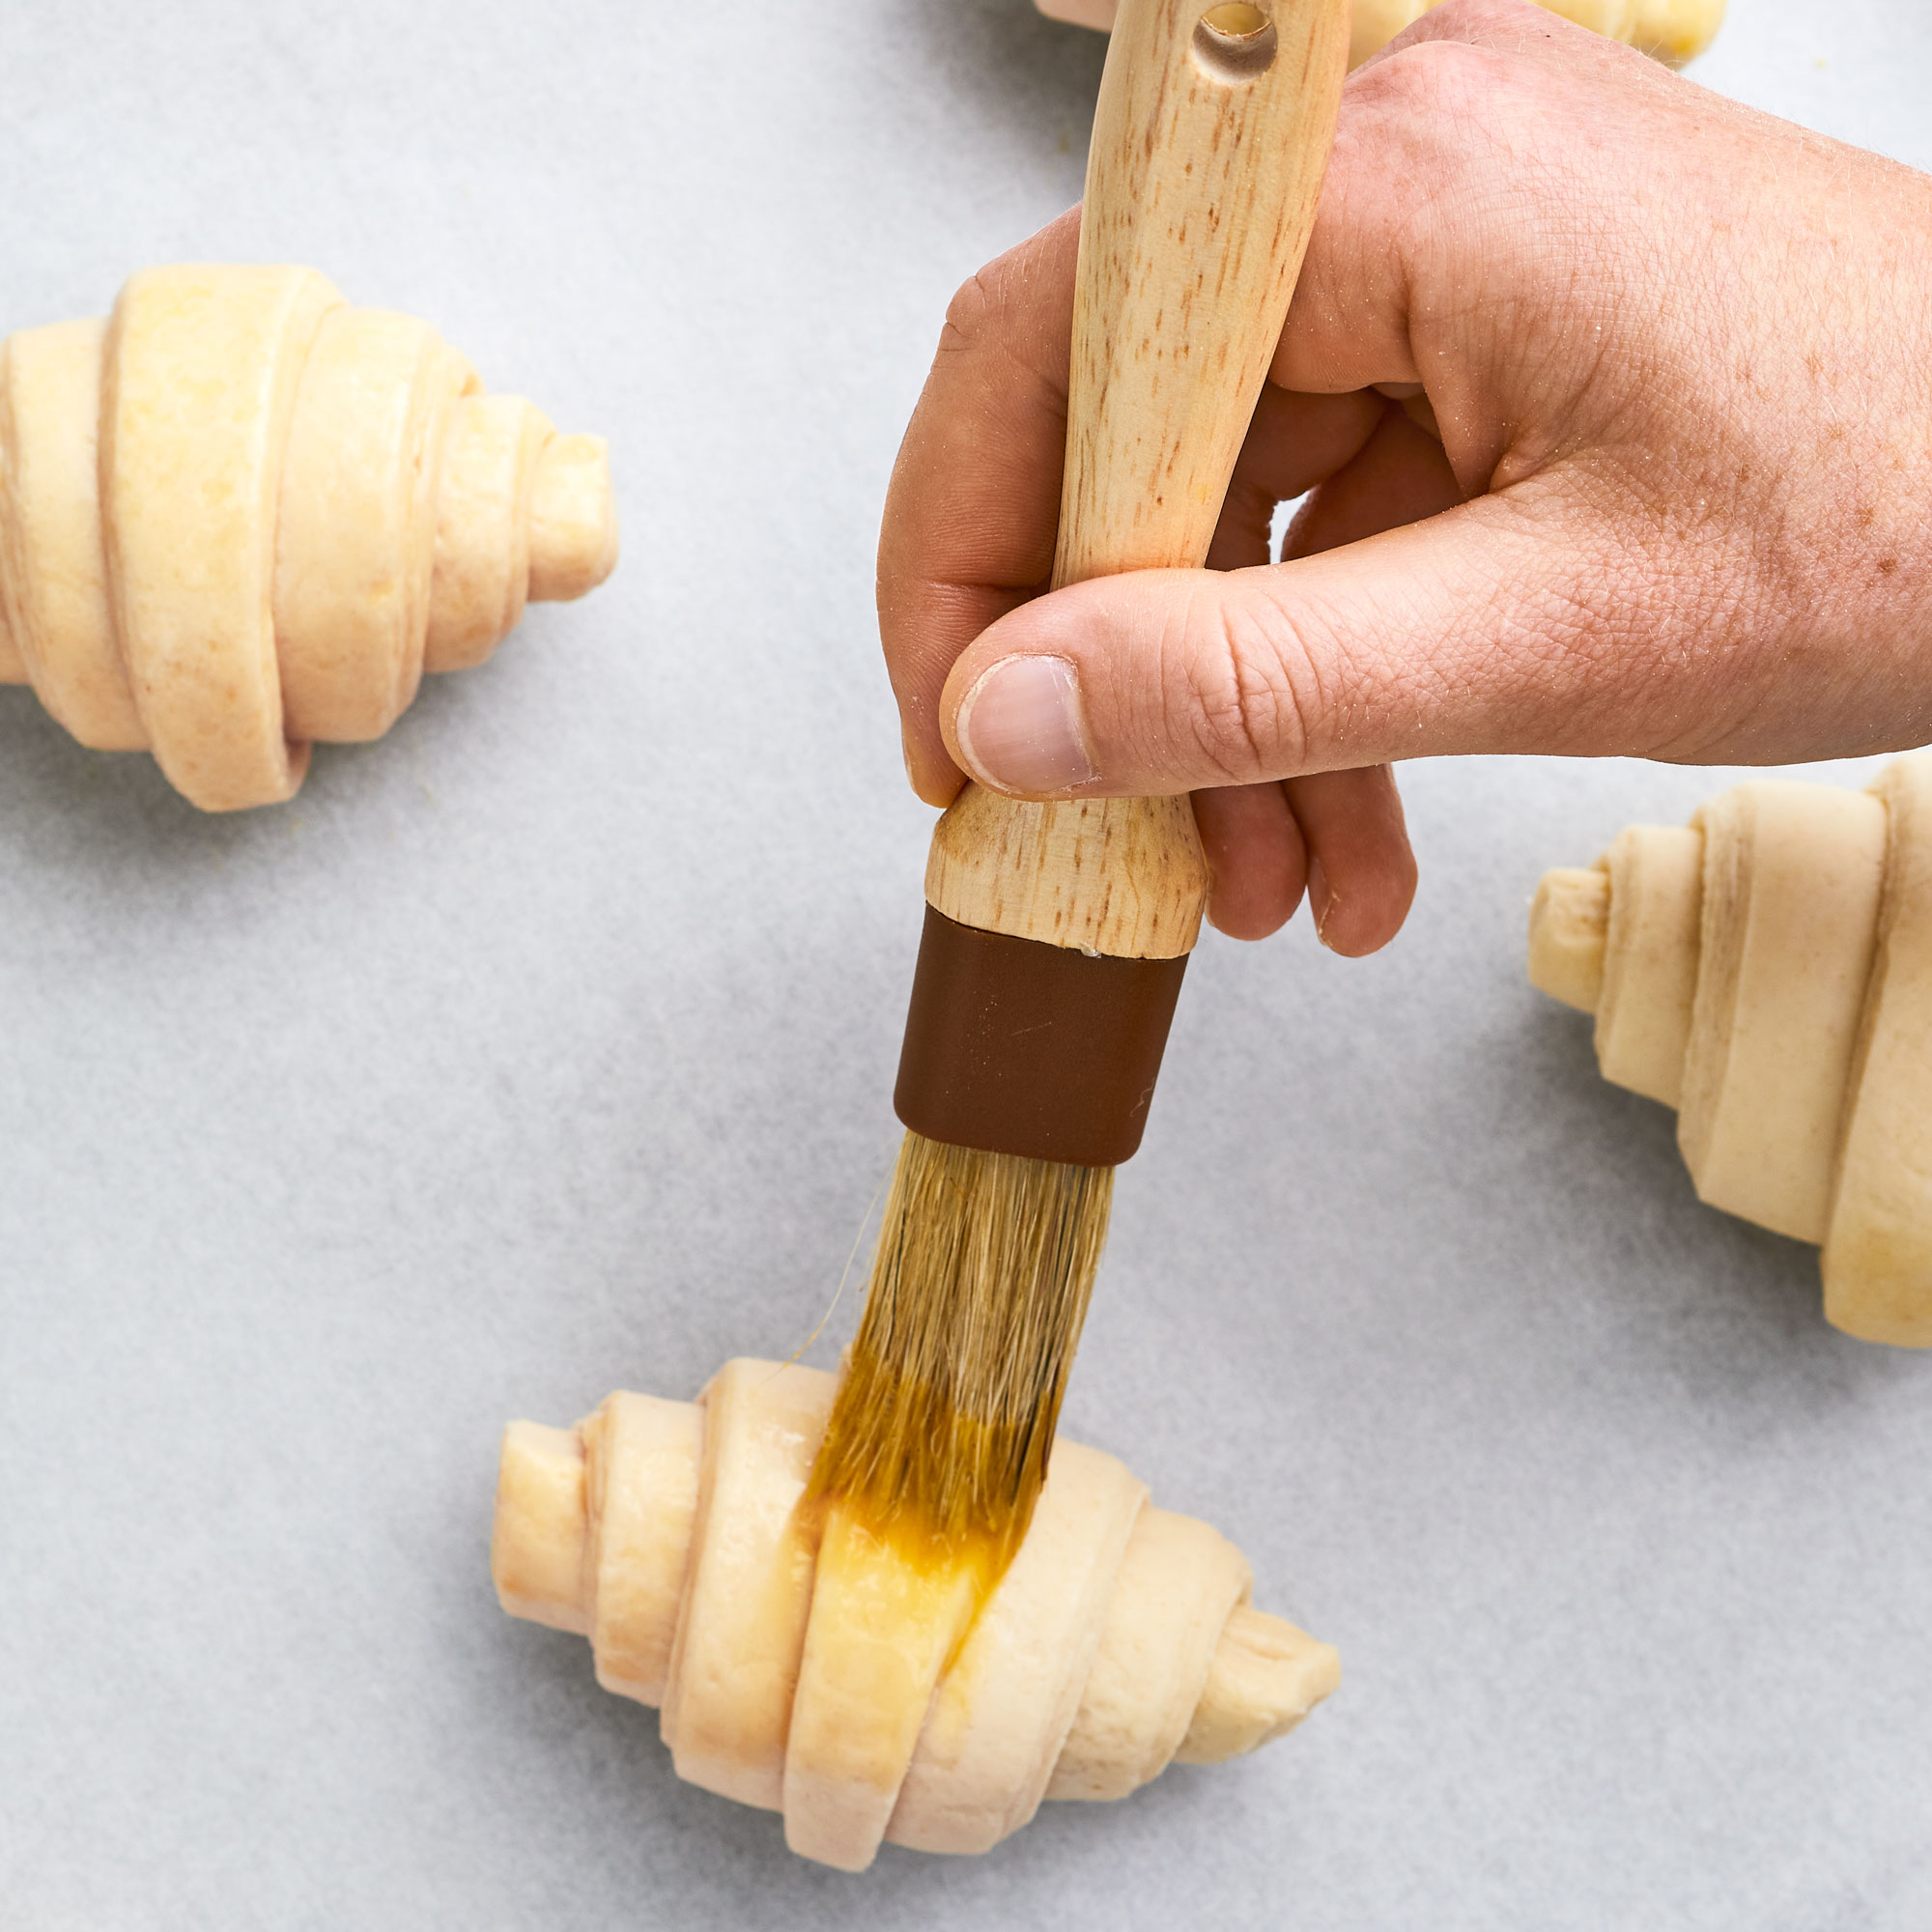 How To Make Classic Croissants